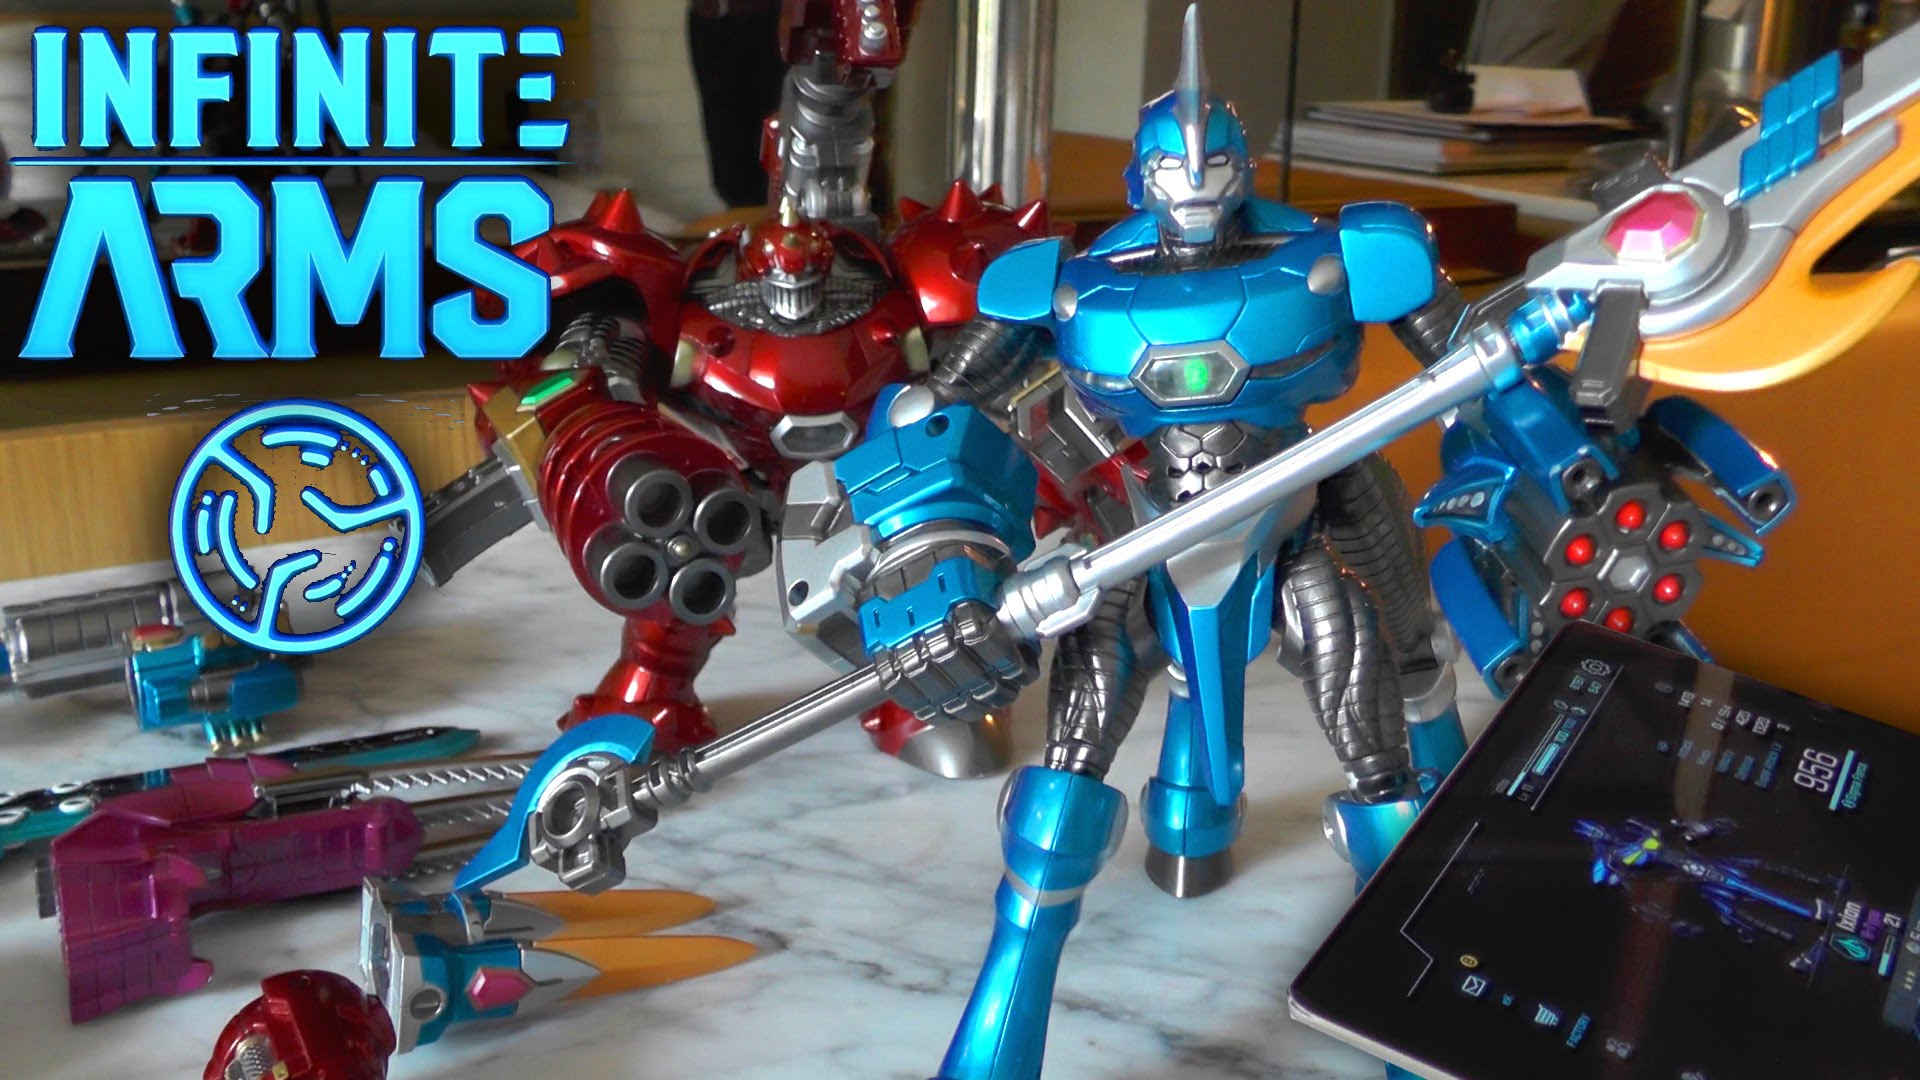 Infinite Arms Reboots Toys to Life – Exclusive E3 Toys and Game Session